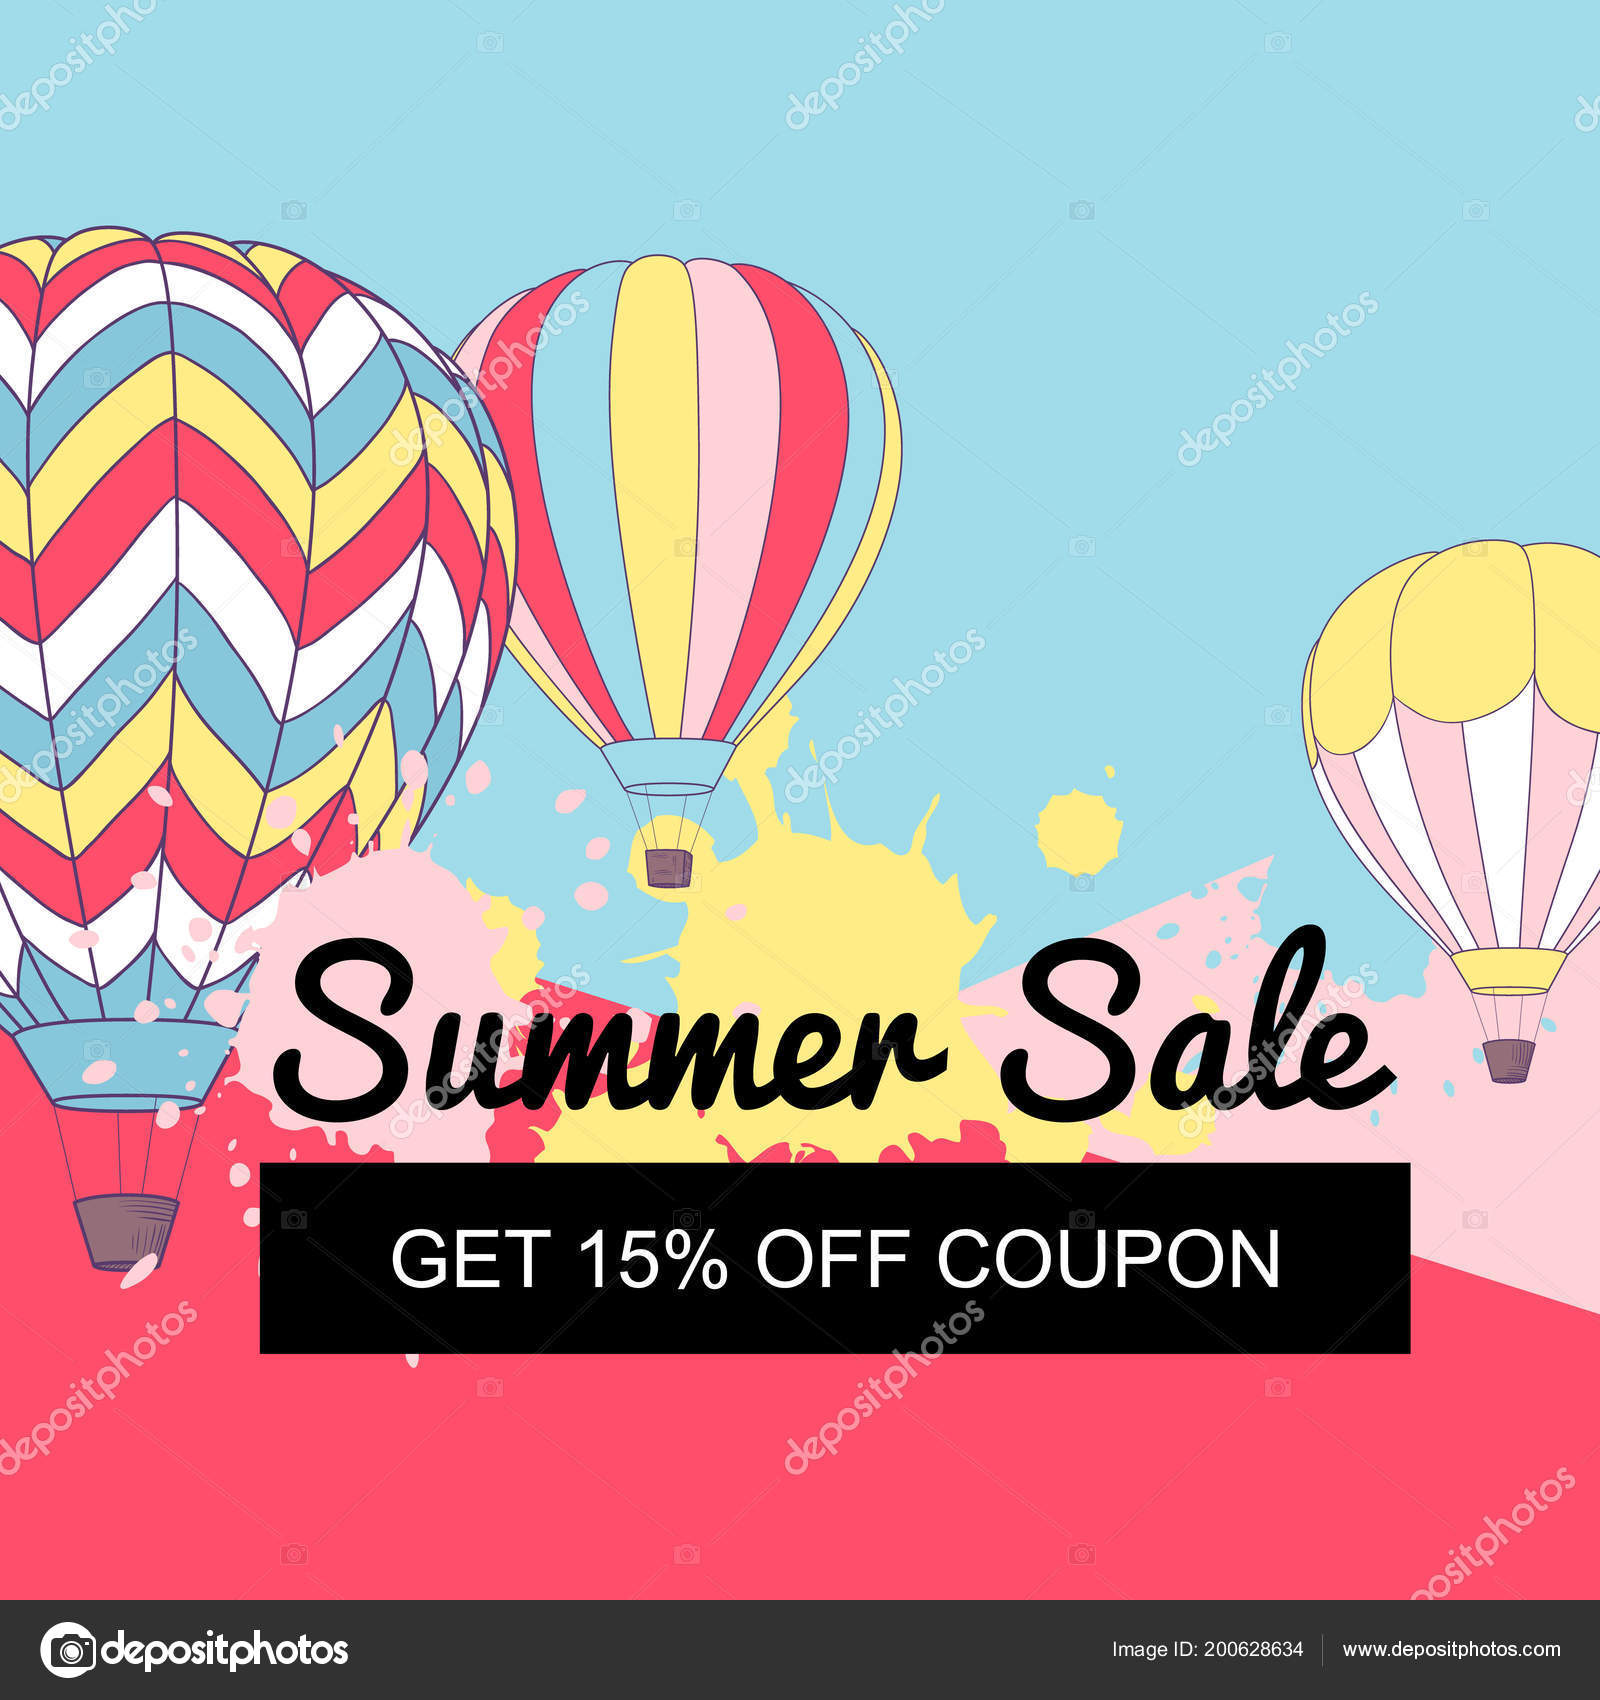 Vector Illustration Summer Sale Banner Design Retro Hot Air Balloons